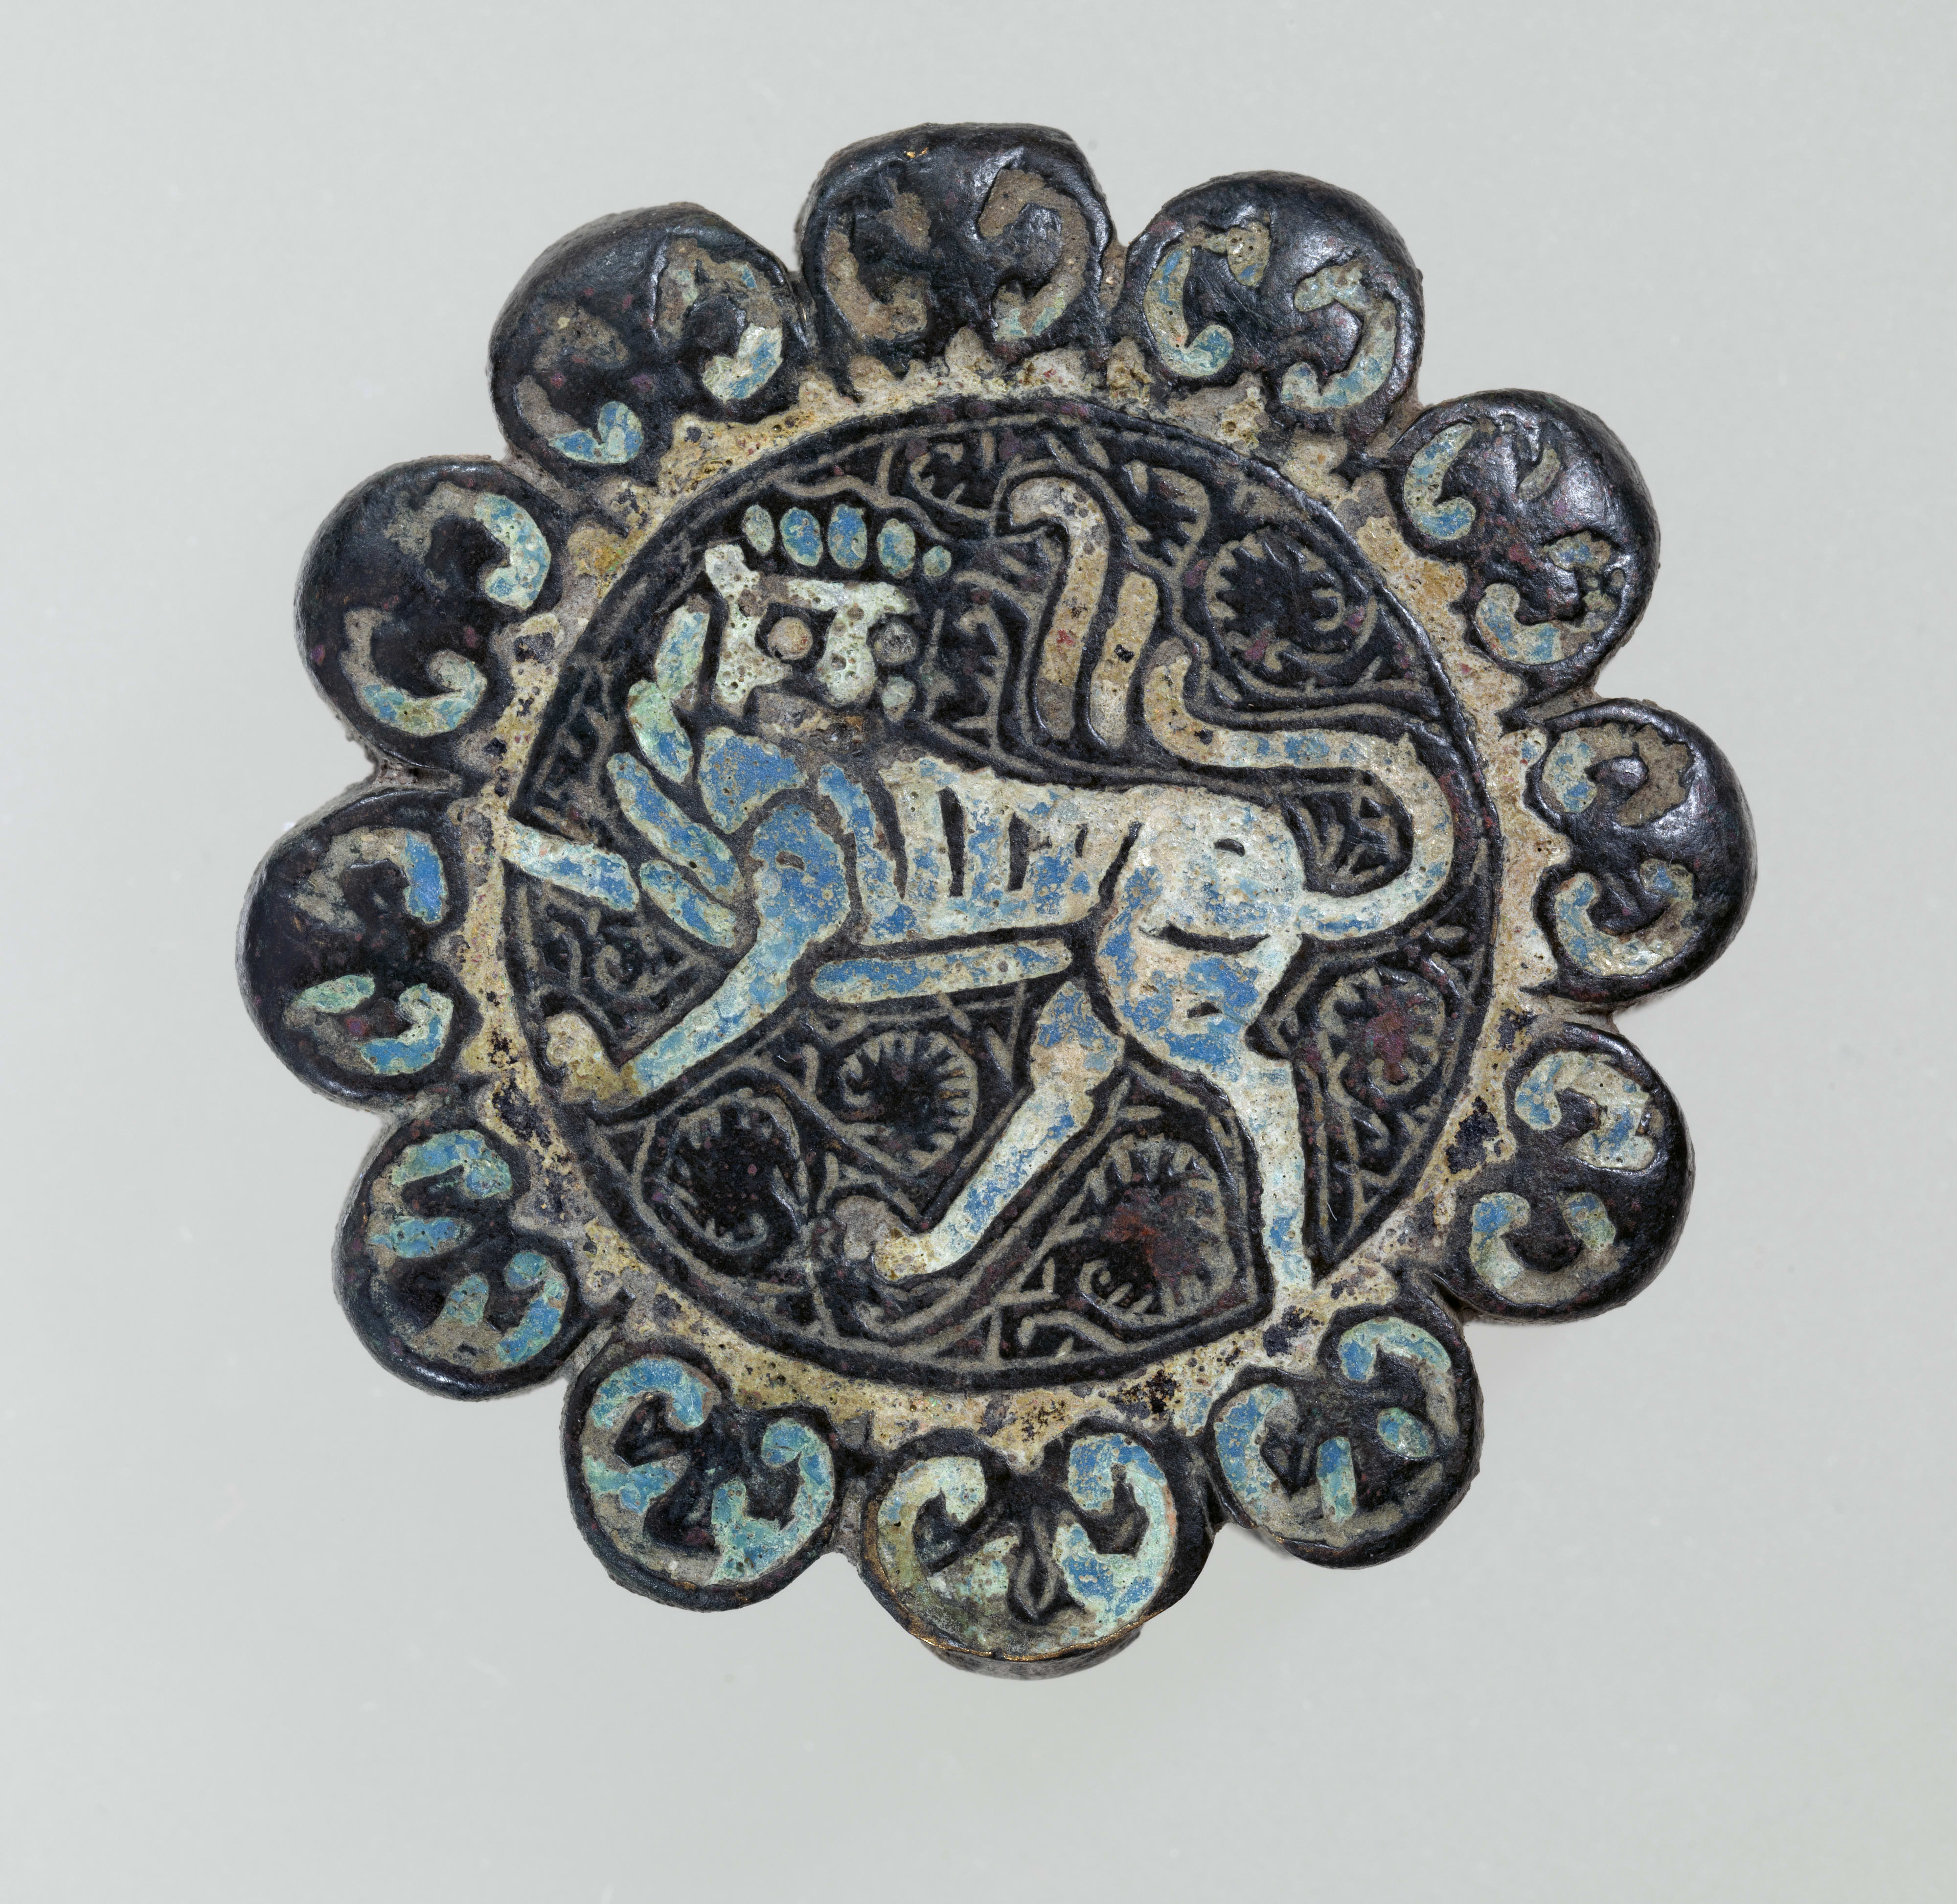 This is an image shows a silk and metallic embroidered badge or patch.